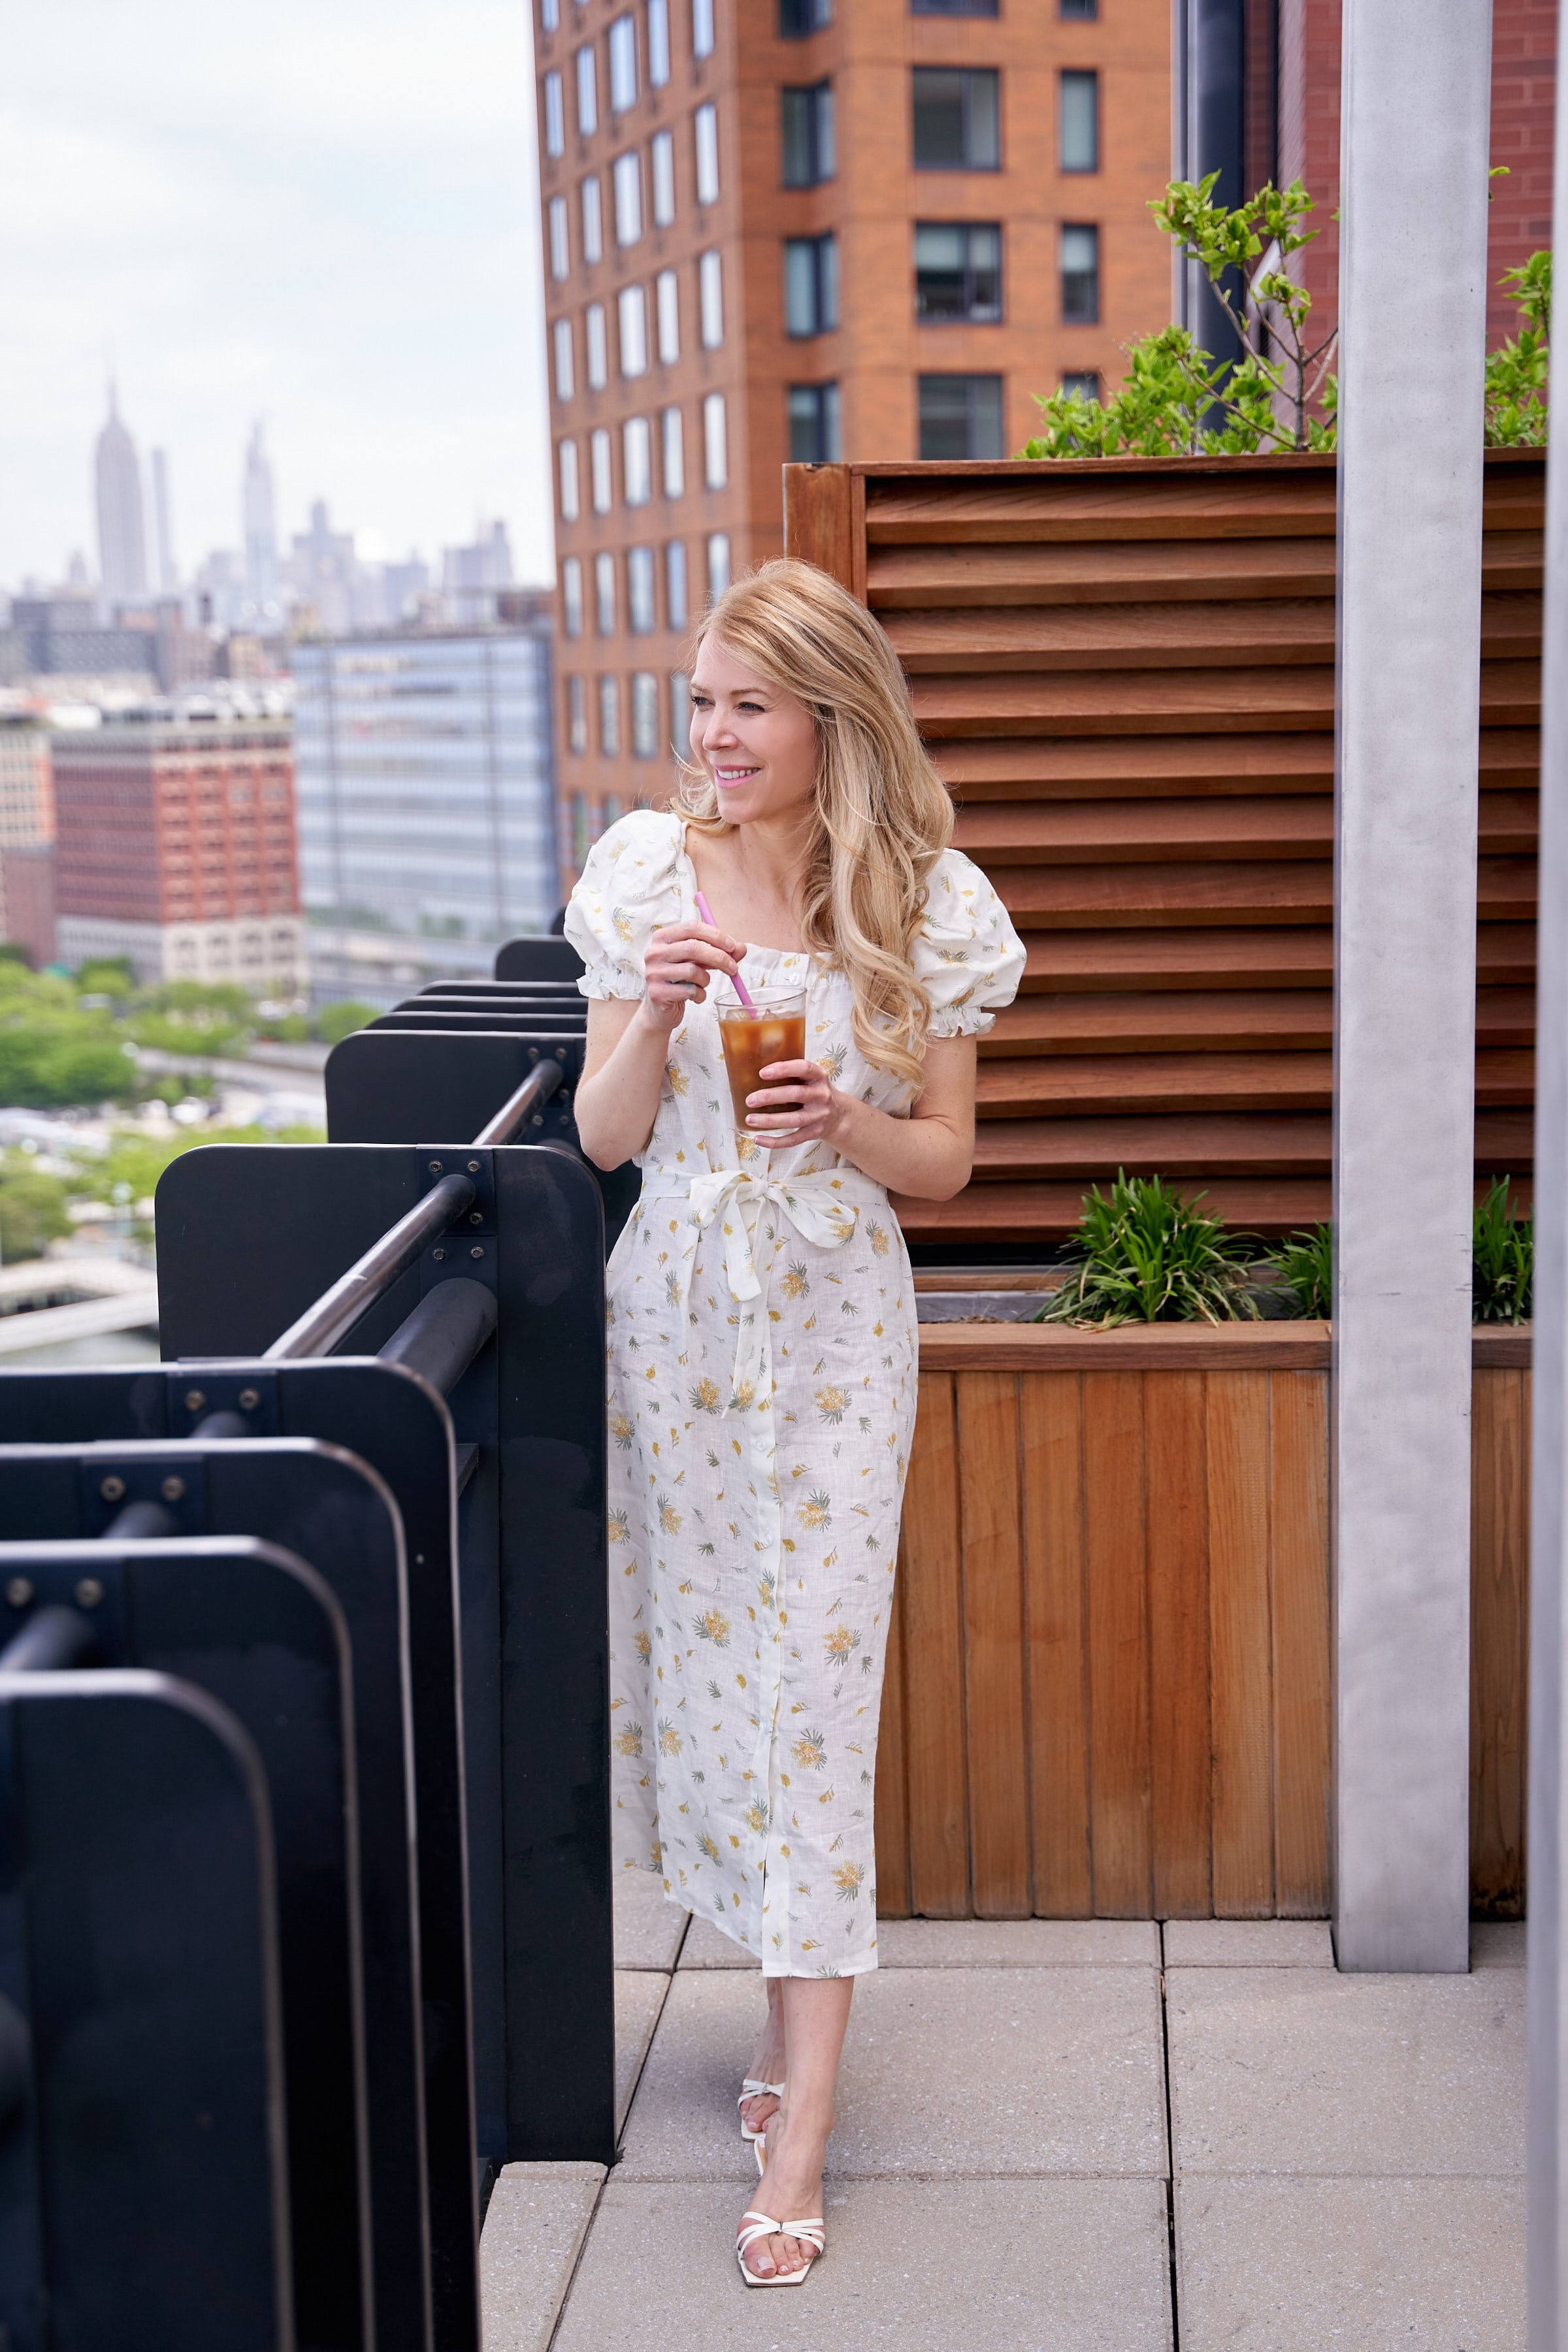 www.abouttheoutfits.com, About the Outfits, Laura Bonner, Daily Sleeper, The Sleeper, Linen summer dress, NYC fashion blogger